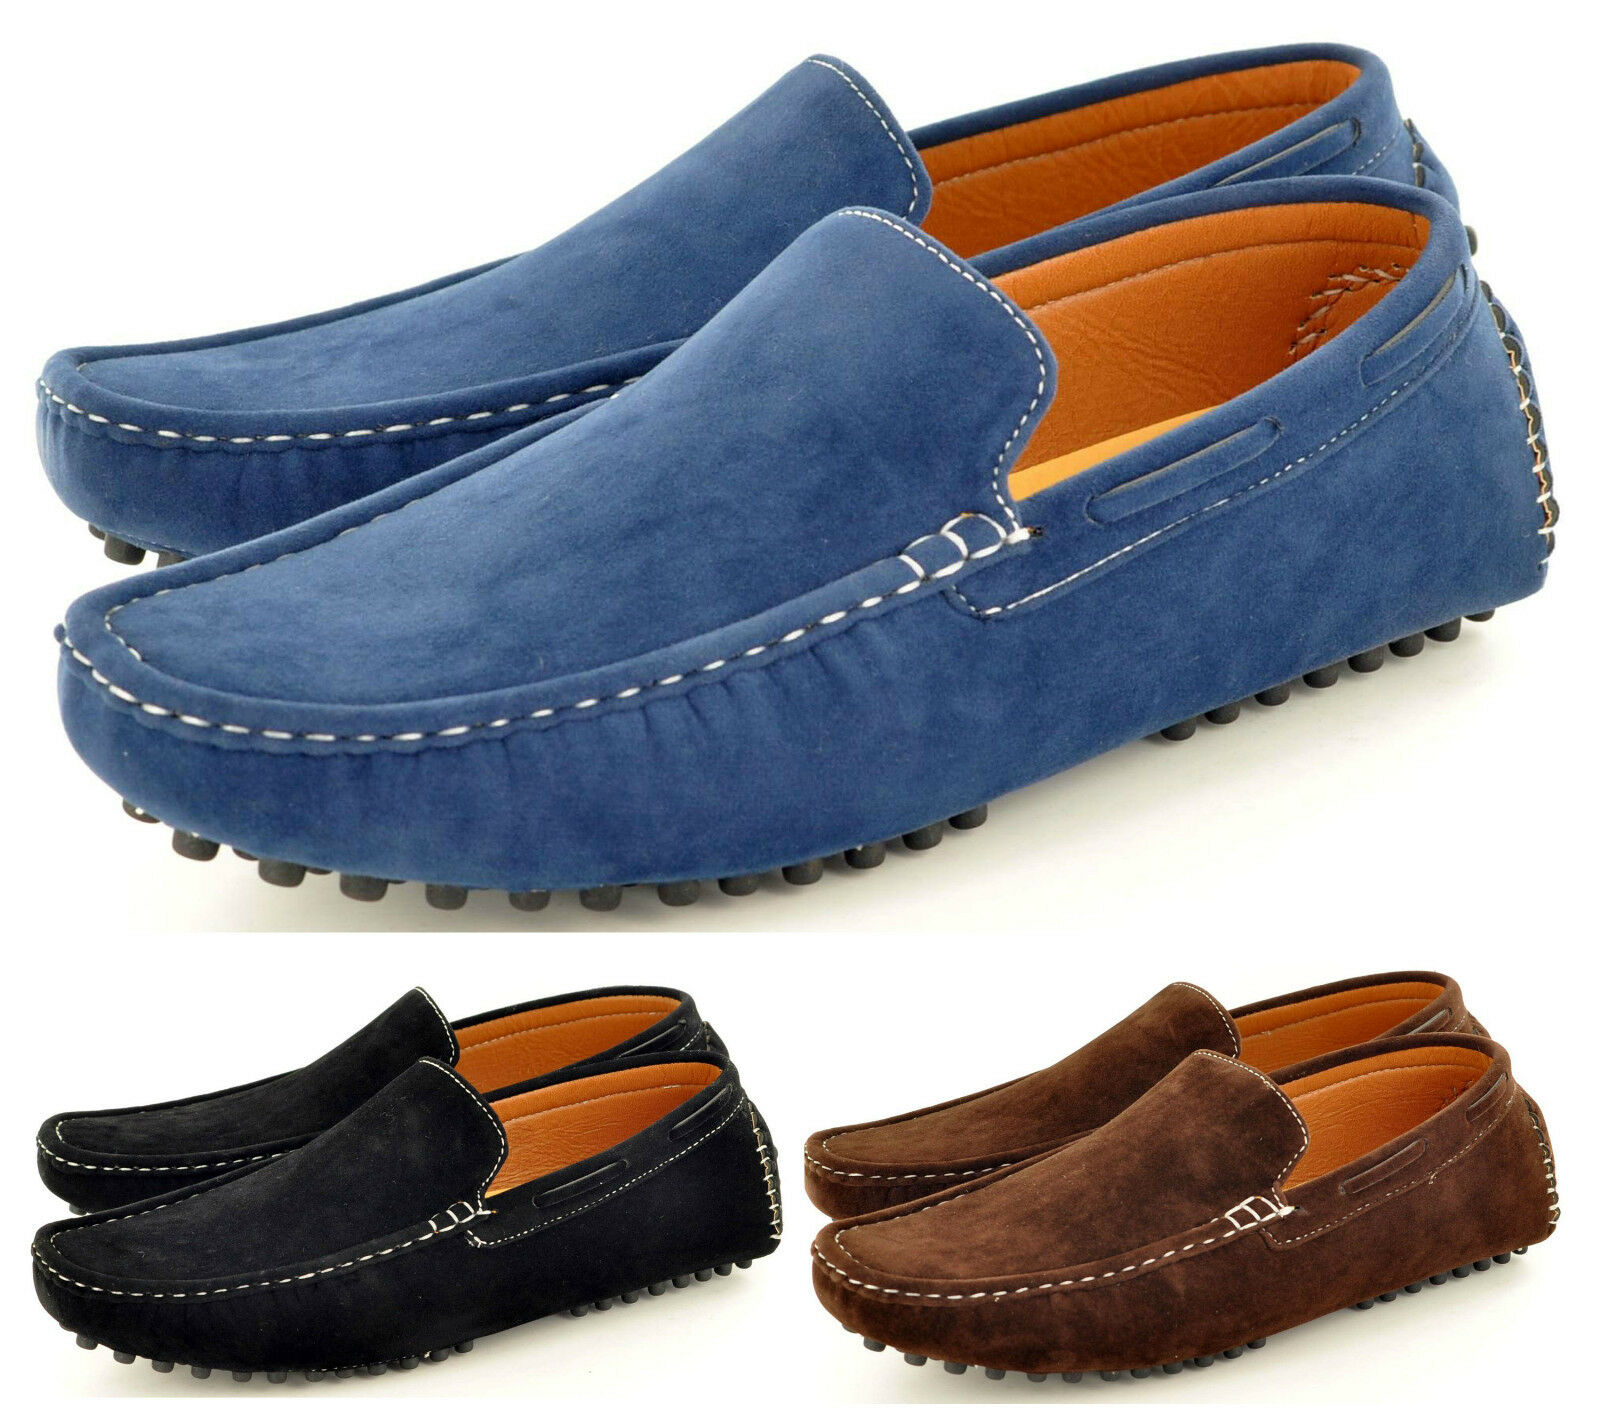 New Shoes Mens Faux Suede Casual Loafers Moccasins Slip on Shoes New Avail. UK Sizes 6-11 658cbc